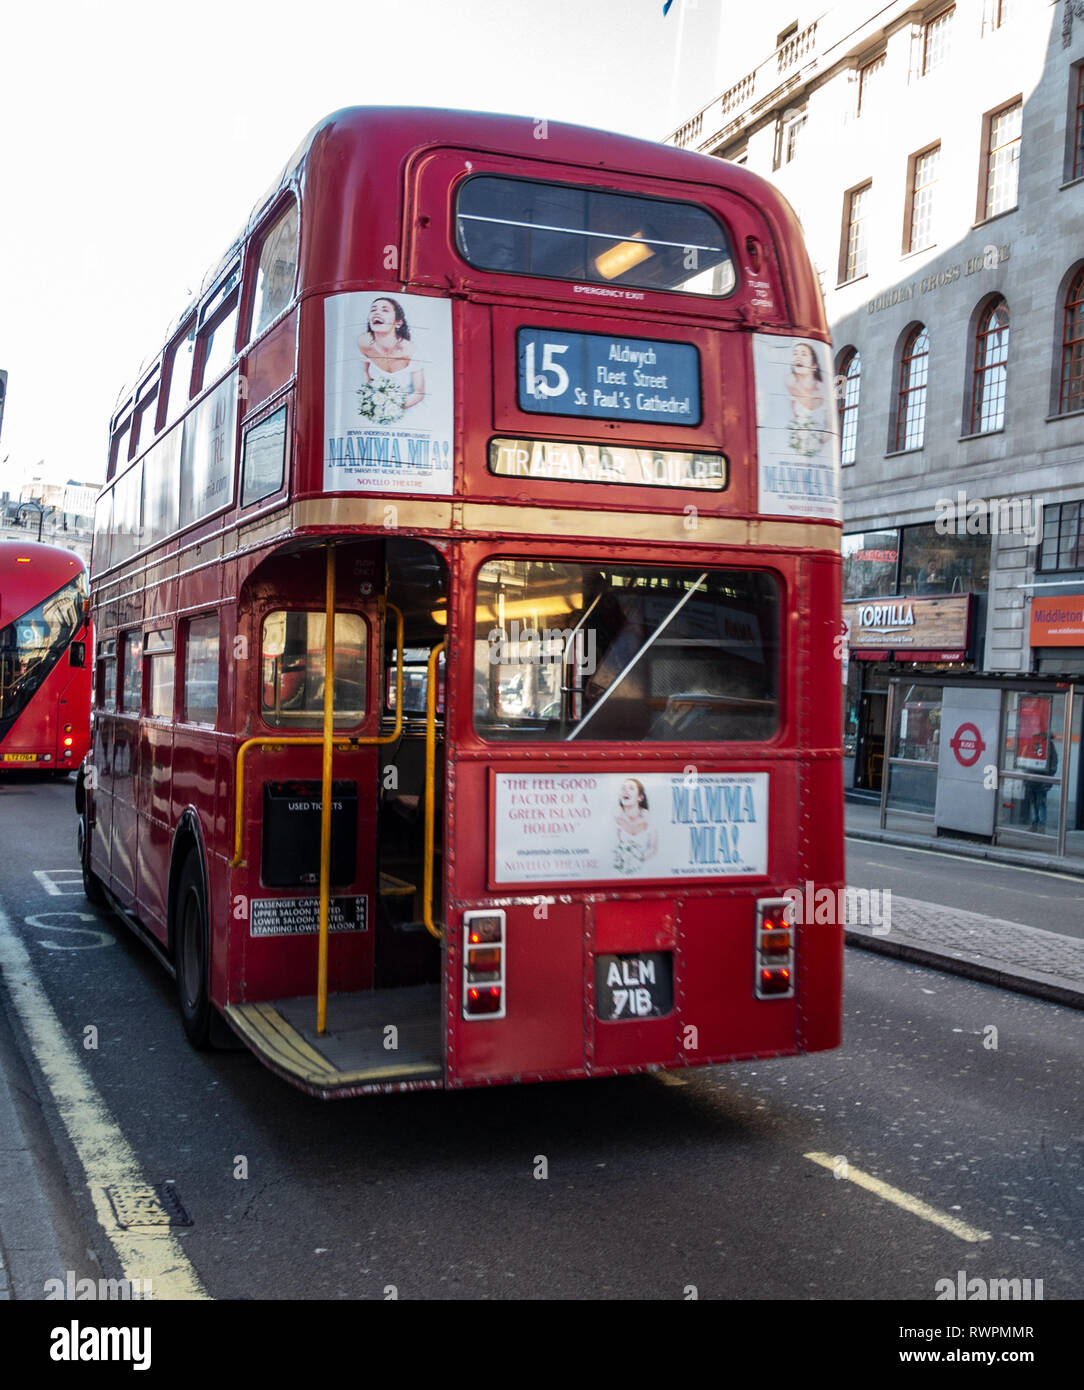 Rear of Service Number 15 One of the last London Vintage Routemaster buses still in service on the streets Trafalgar Square, London, England - Stock Image